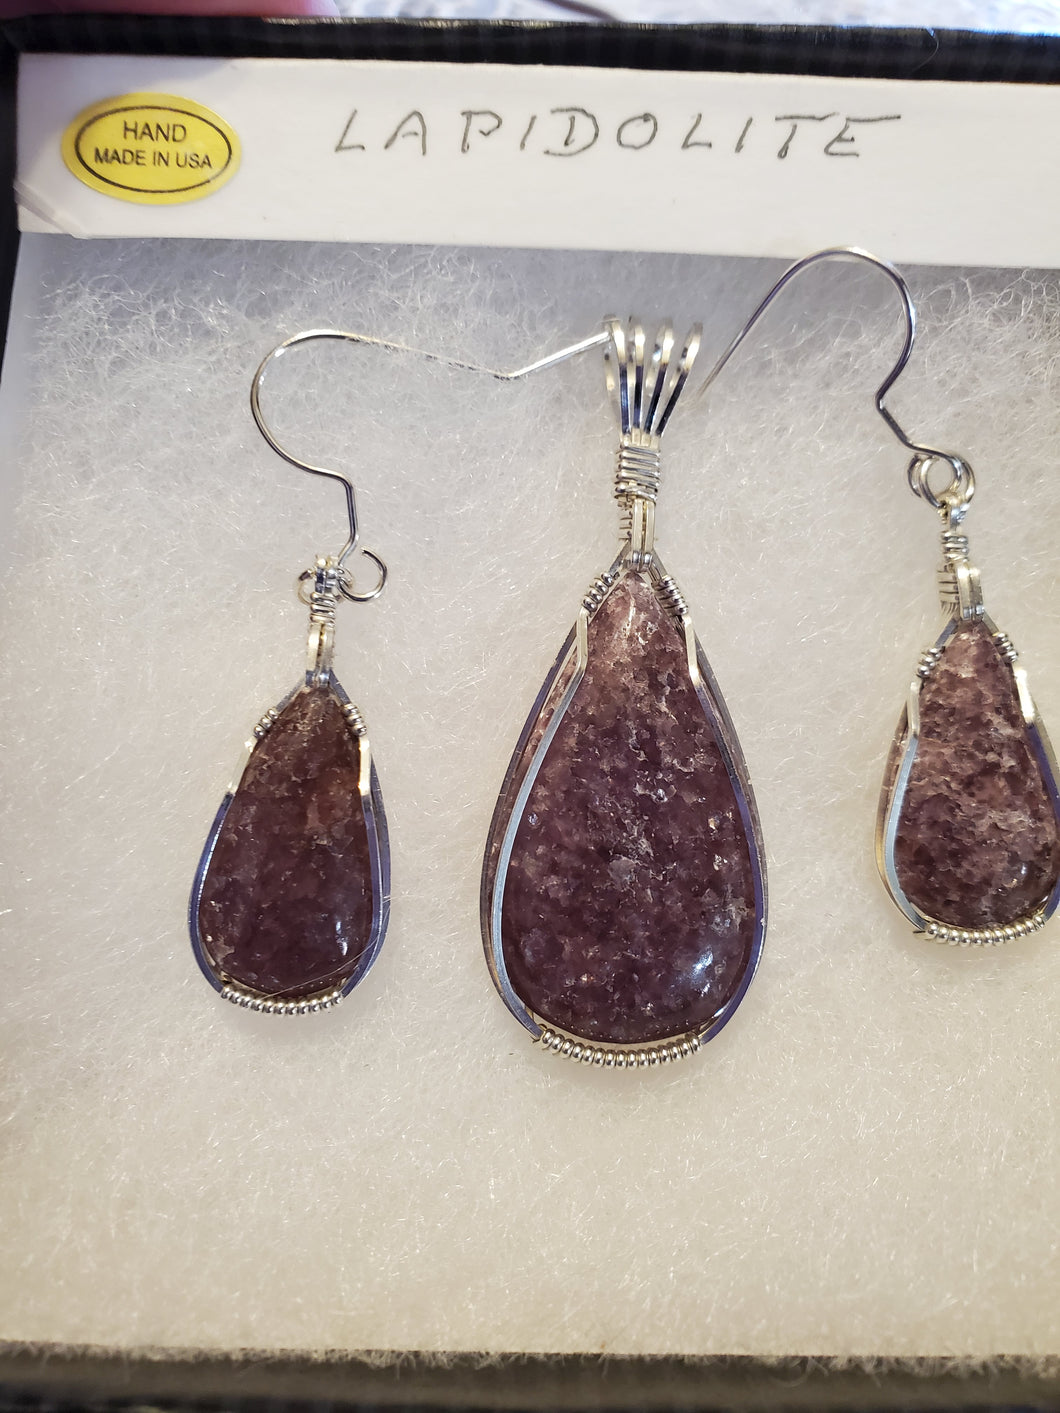 Custom wire wrapped Lapidolite Set Earrings, Necklace/Pendant Sterling Silver